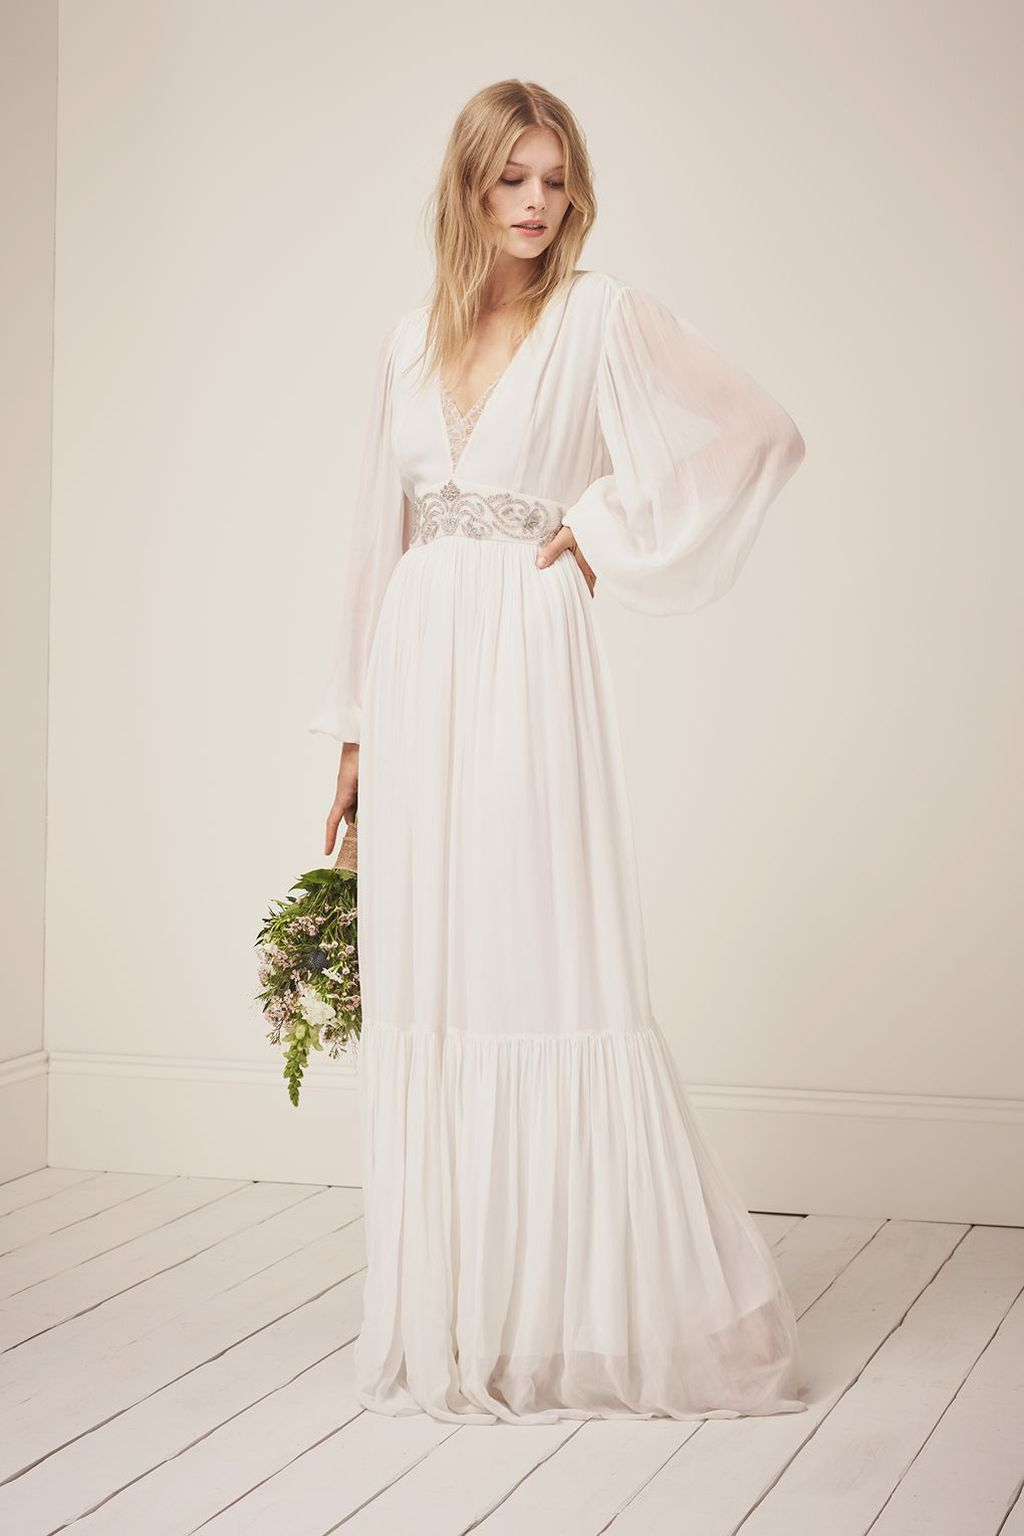 French Connection ventures into bridalwear   9Style